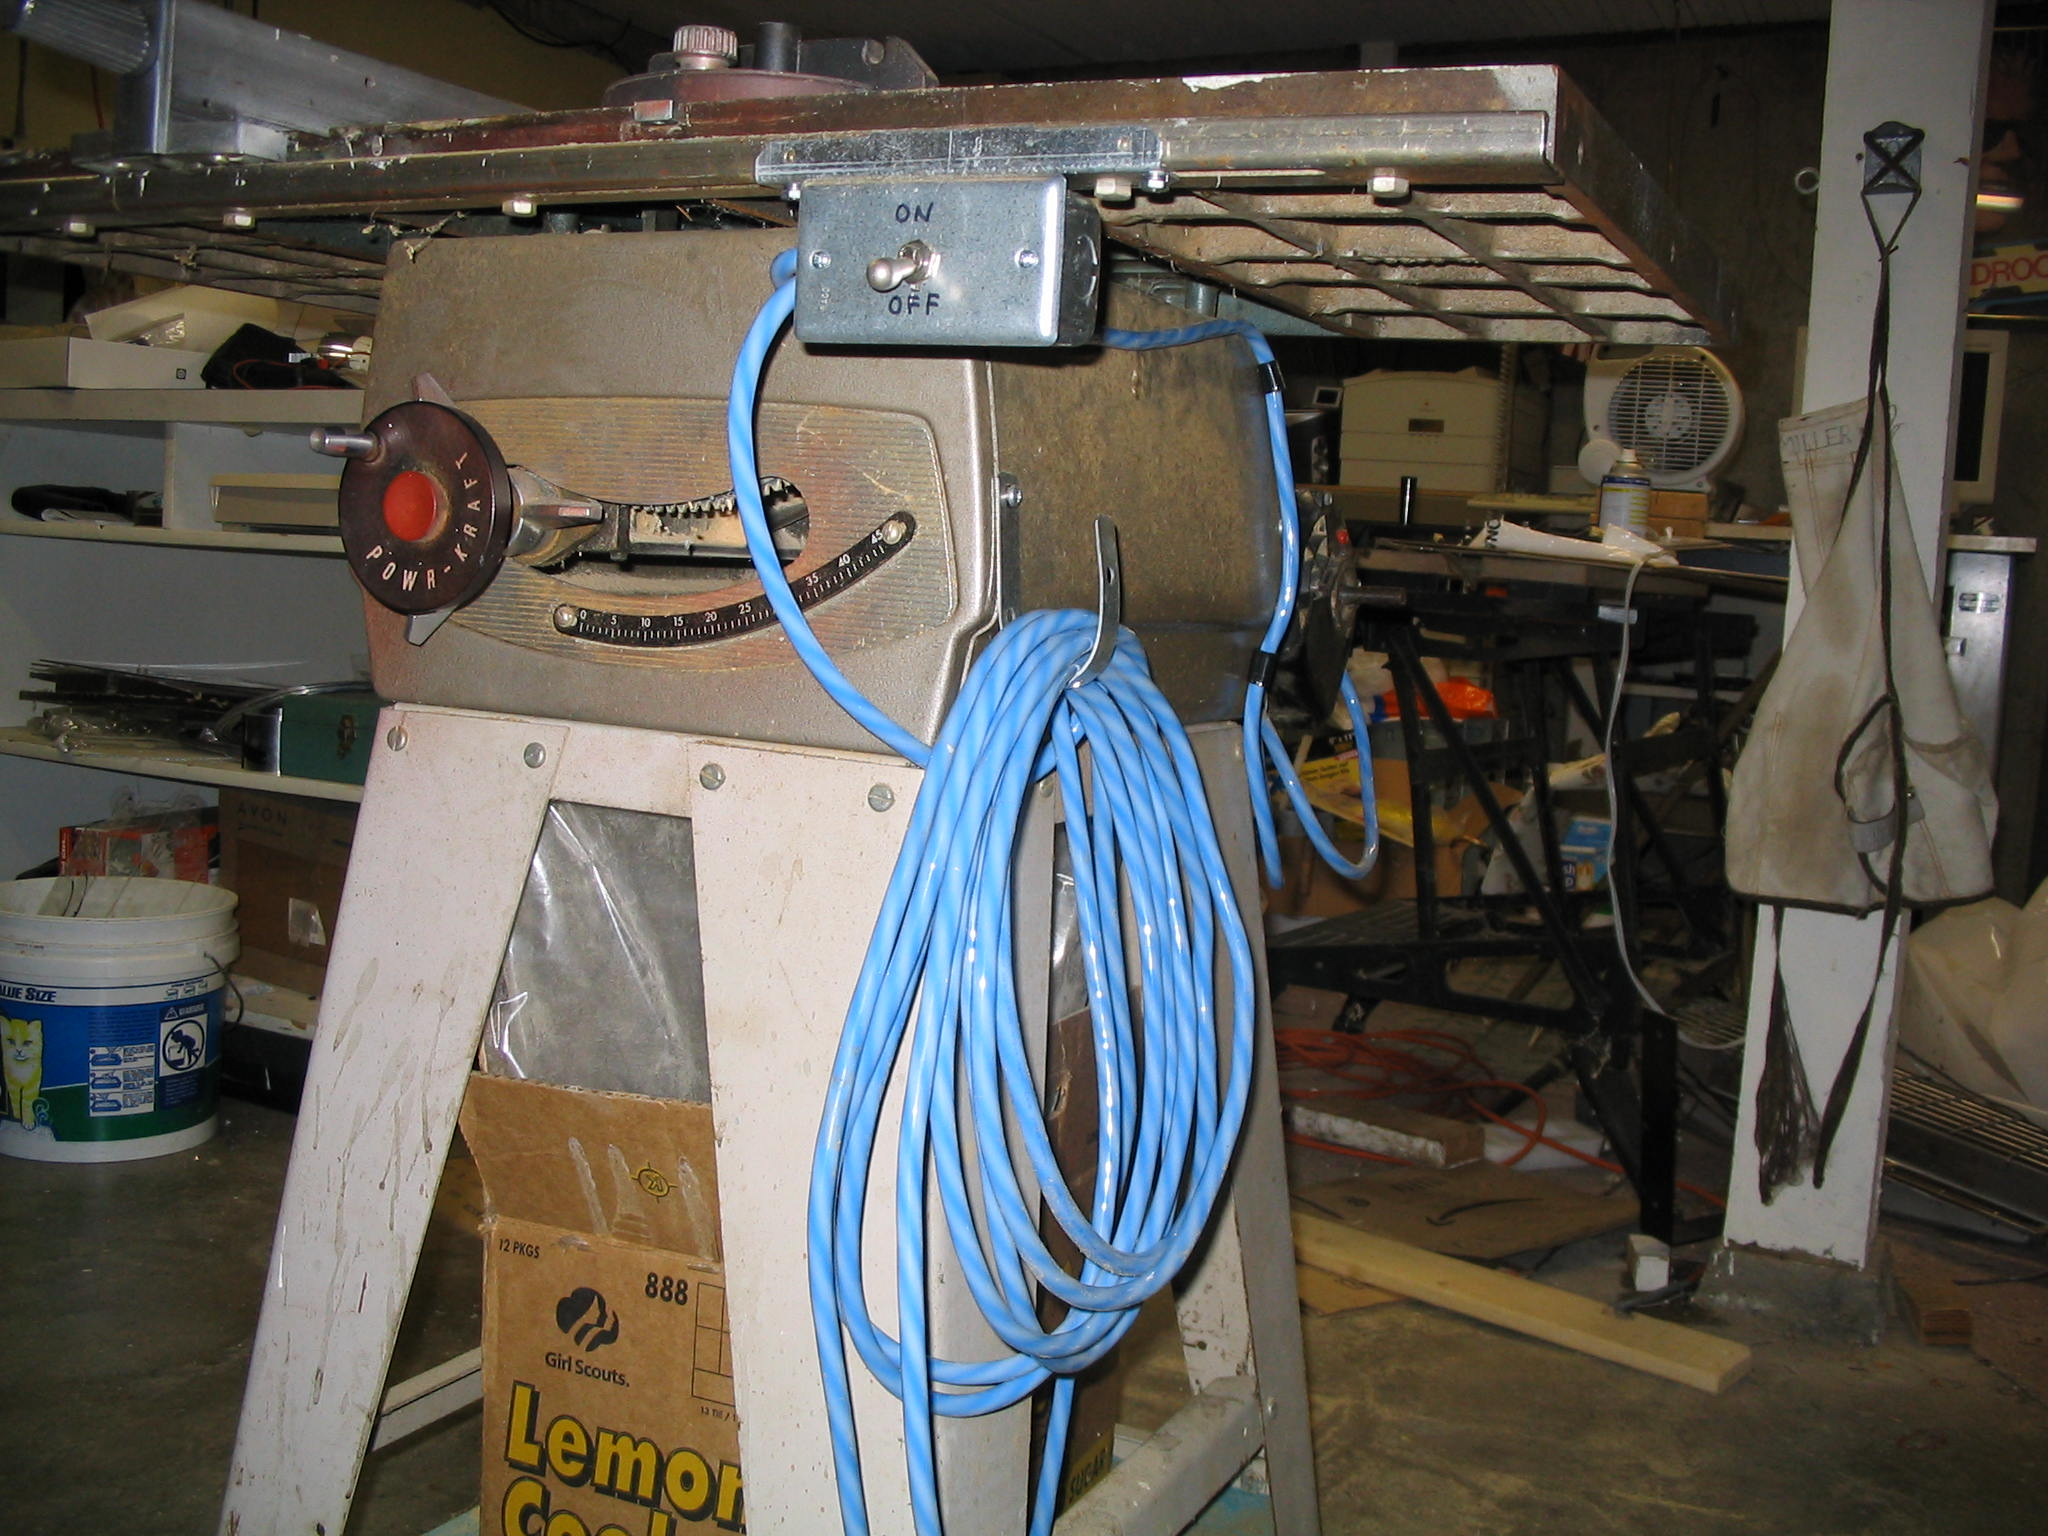 Tablesaw wiring repair bolis new switch and wiring greentooth Choice Image